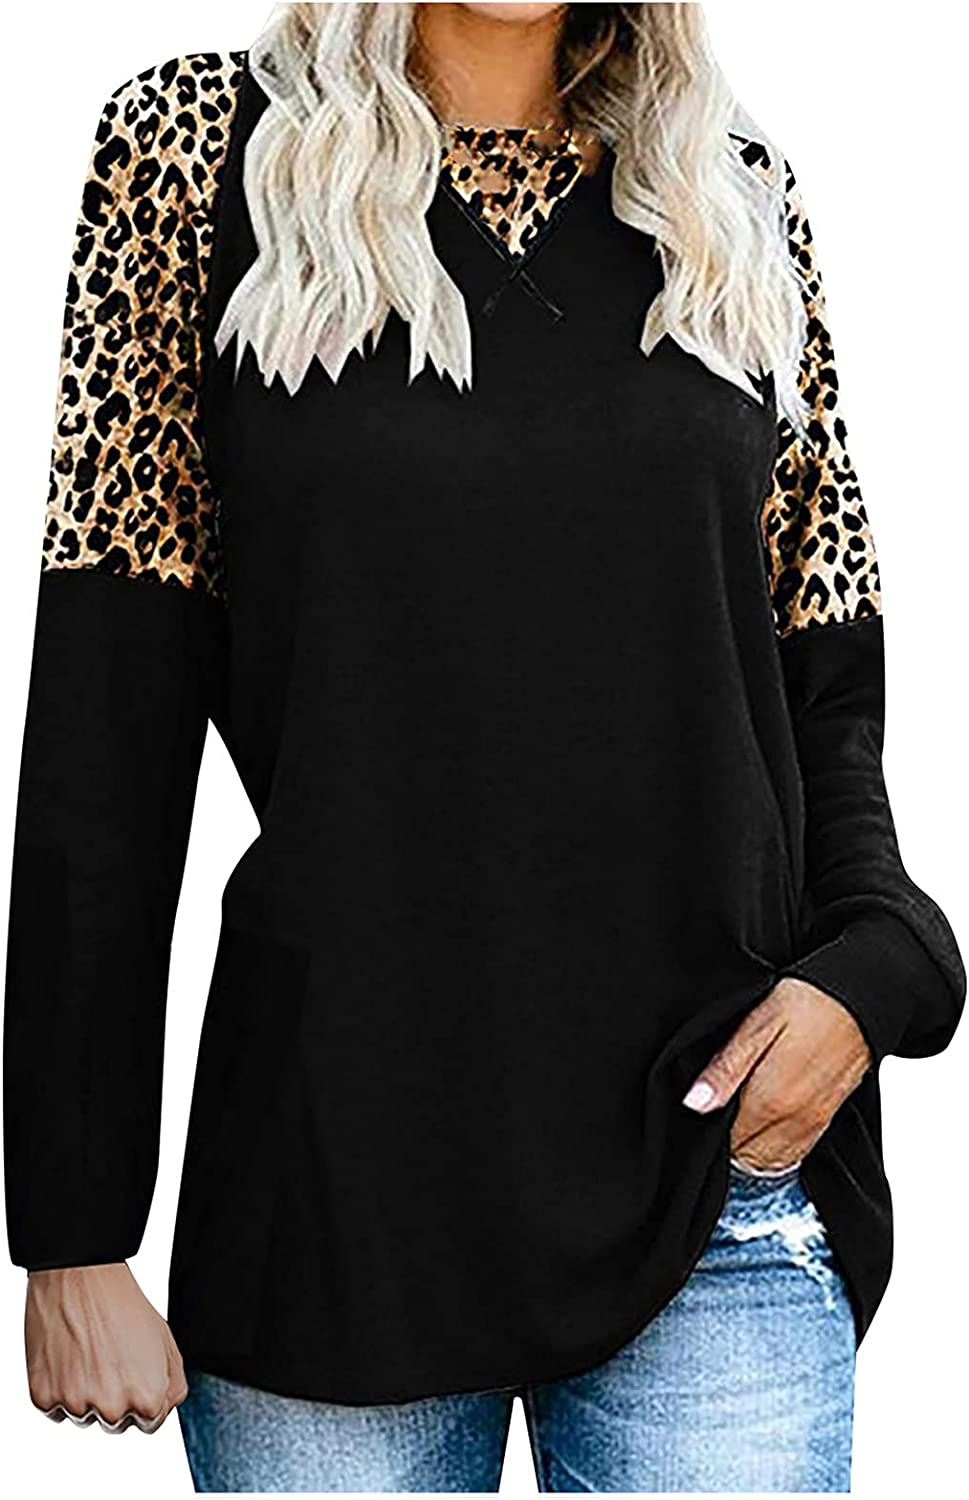 Women's Long Sleeve New Leopard Print Round Neck Casual Fashion T-Shirt All-Match Women's Blouse 370